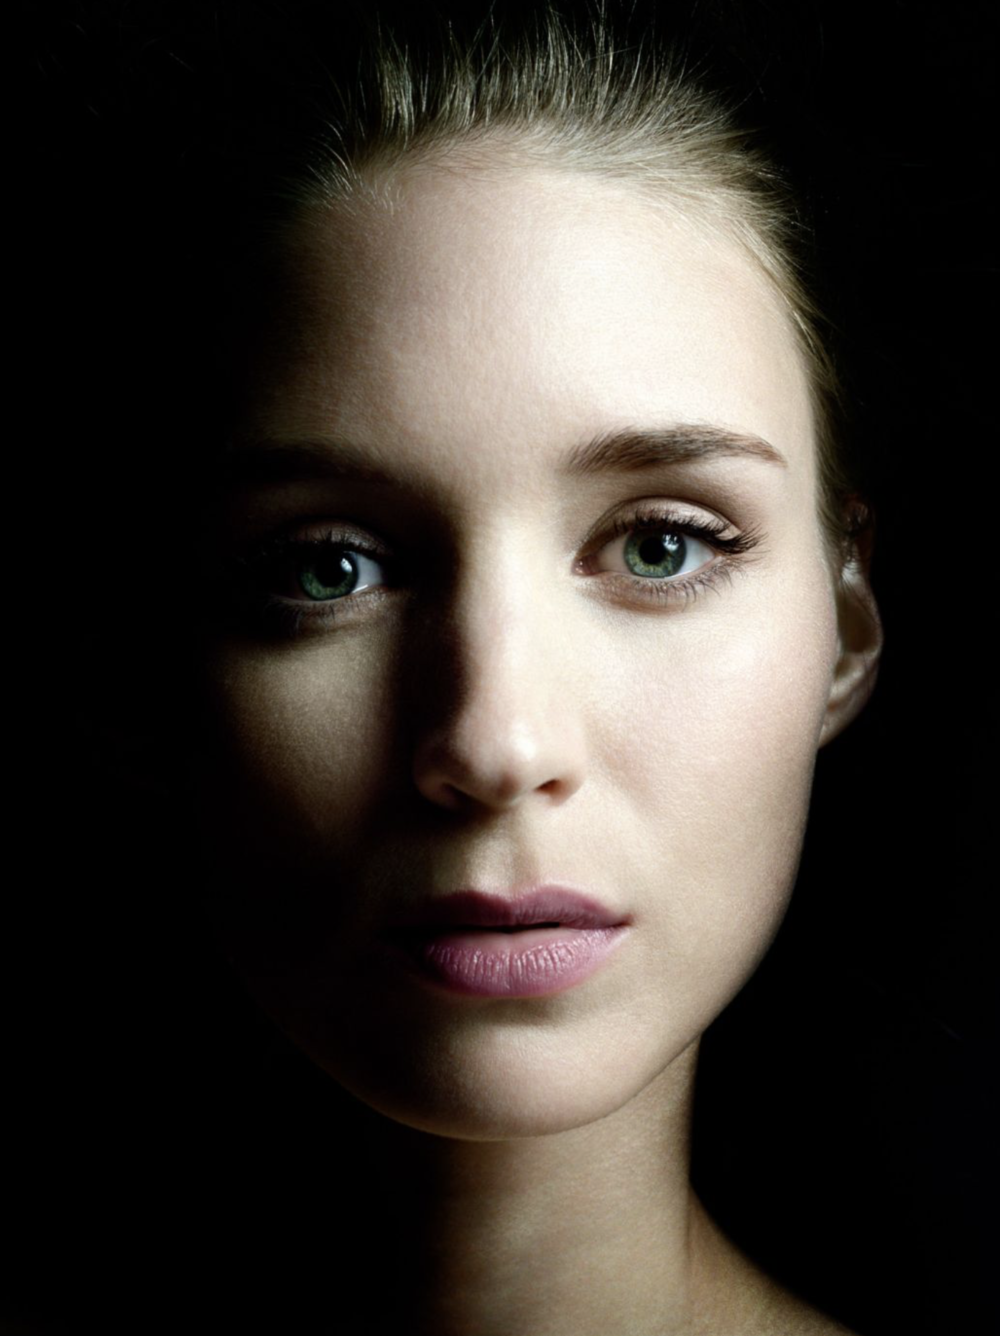 Renowned portrait photographer and photo journalist  Platon . Actress Rooney Mara shown above.